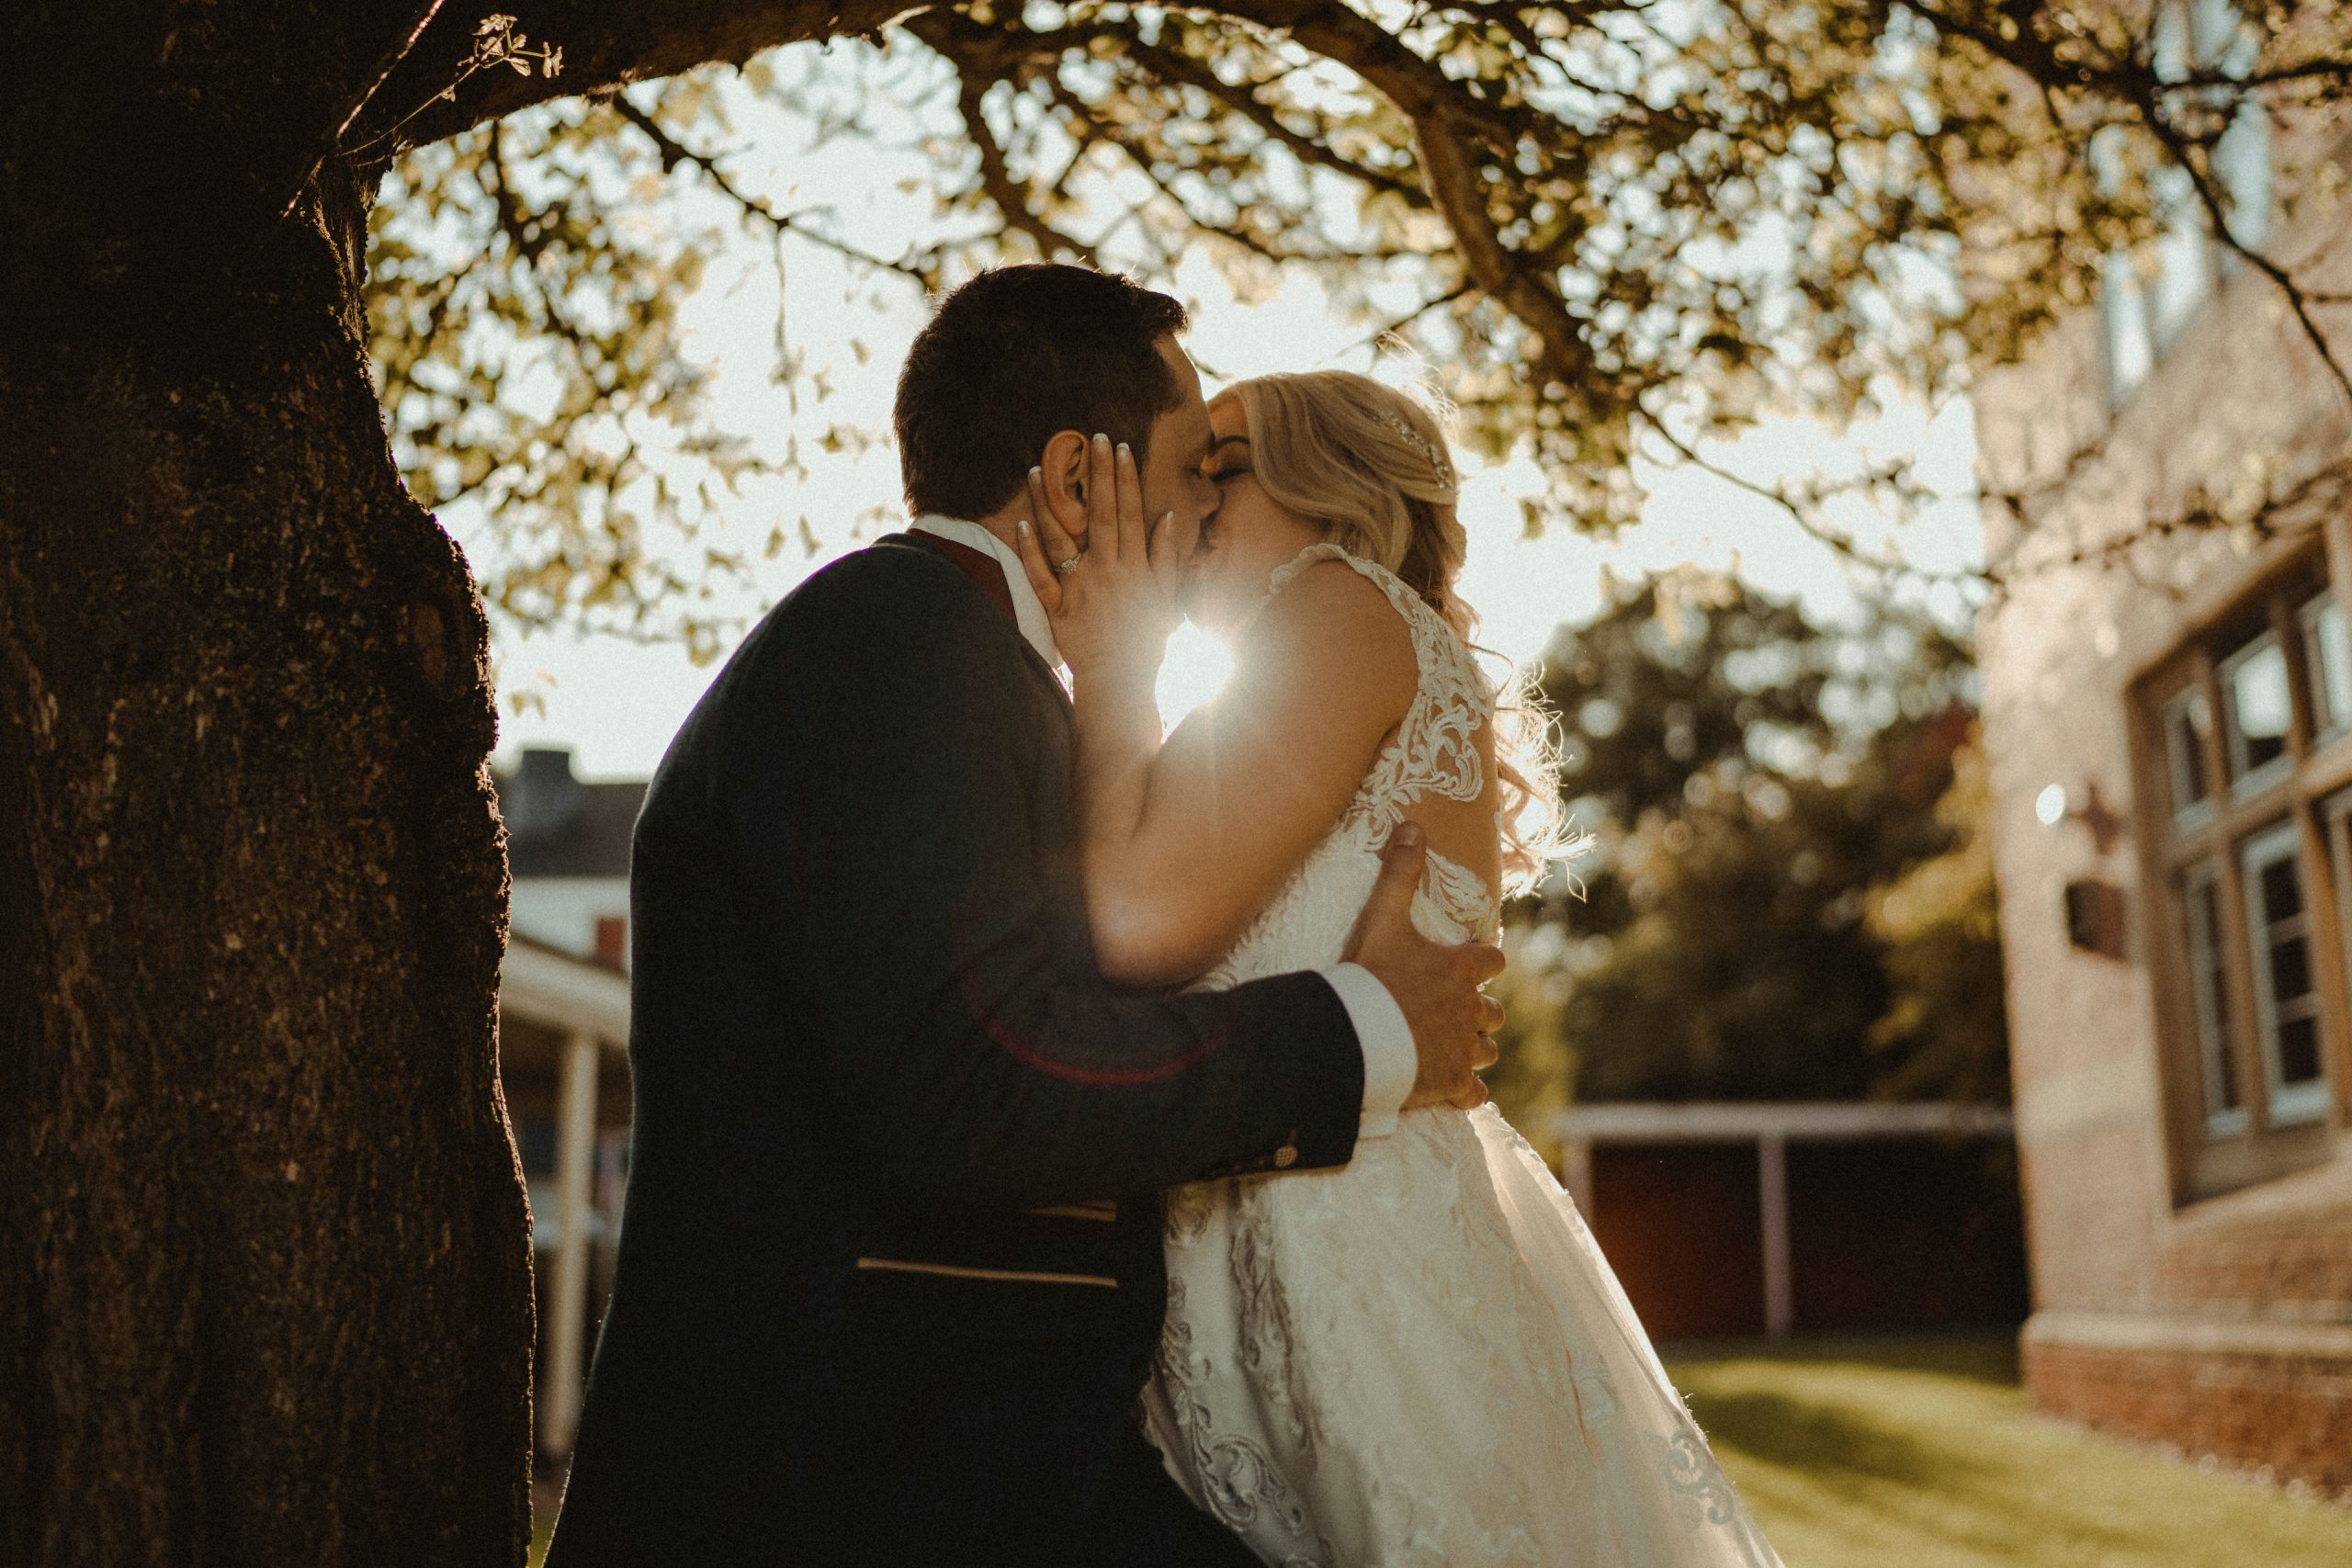 Bride and groom kiss in the sunset, autumn wedding